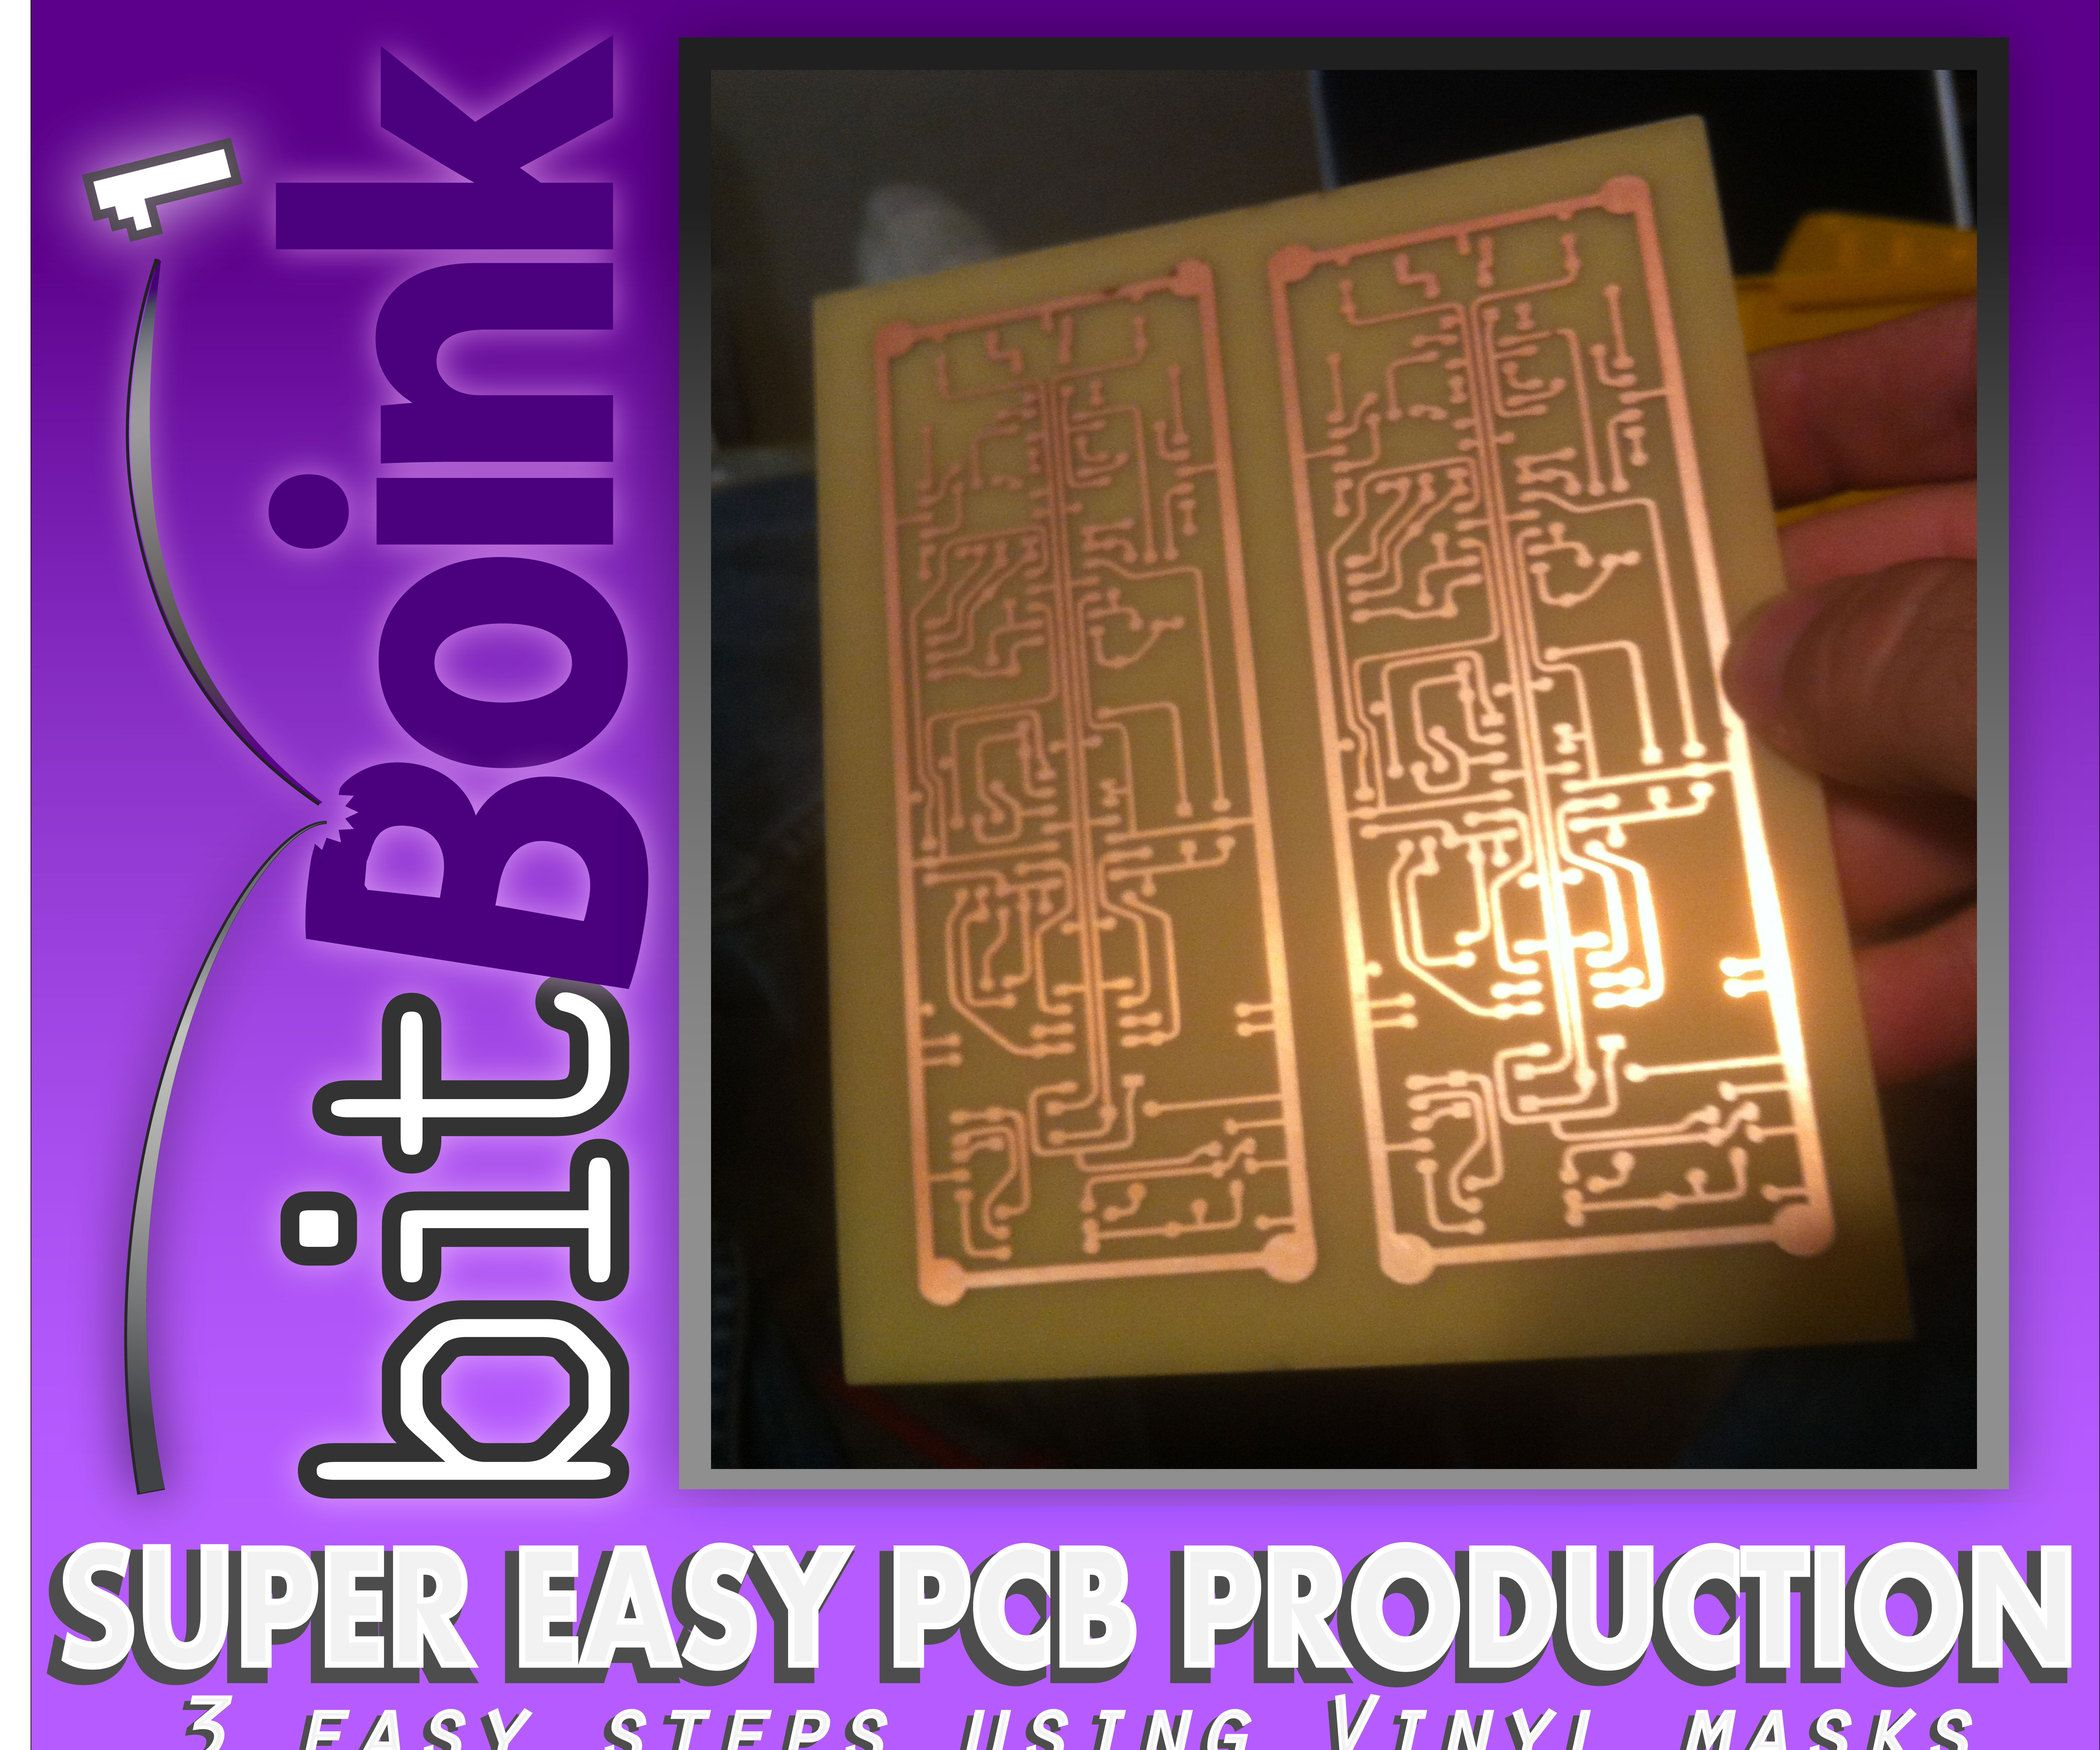 Fast And Easy Pcb Prototyping With Vinyl Circuits Circuit Skills Board Etching Youtube One Of The Most Aggravating Things When Creating Diy Is Making Up Till Now Methods Require Alot Work Time On